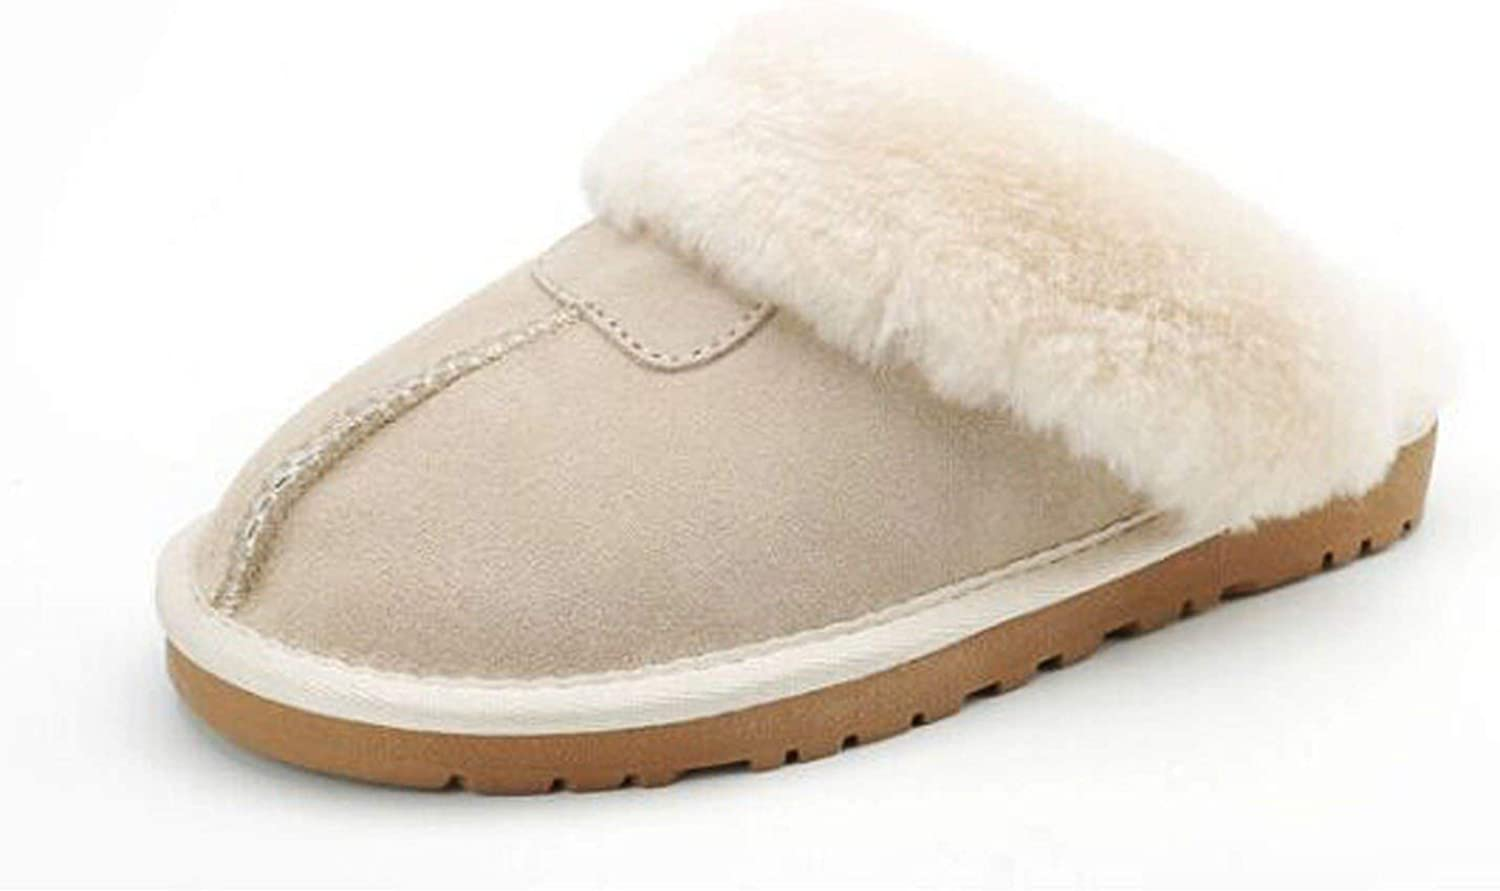 Smile-bi 9 color Sheepskin Genuine Wool Winter Slippers Women Plush Home shoes